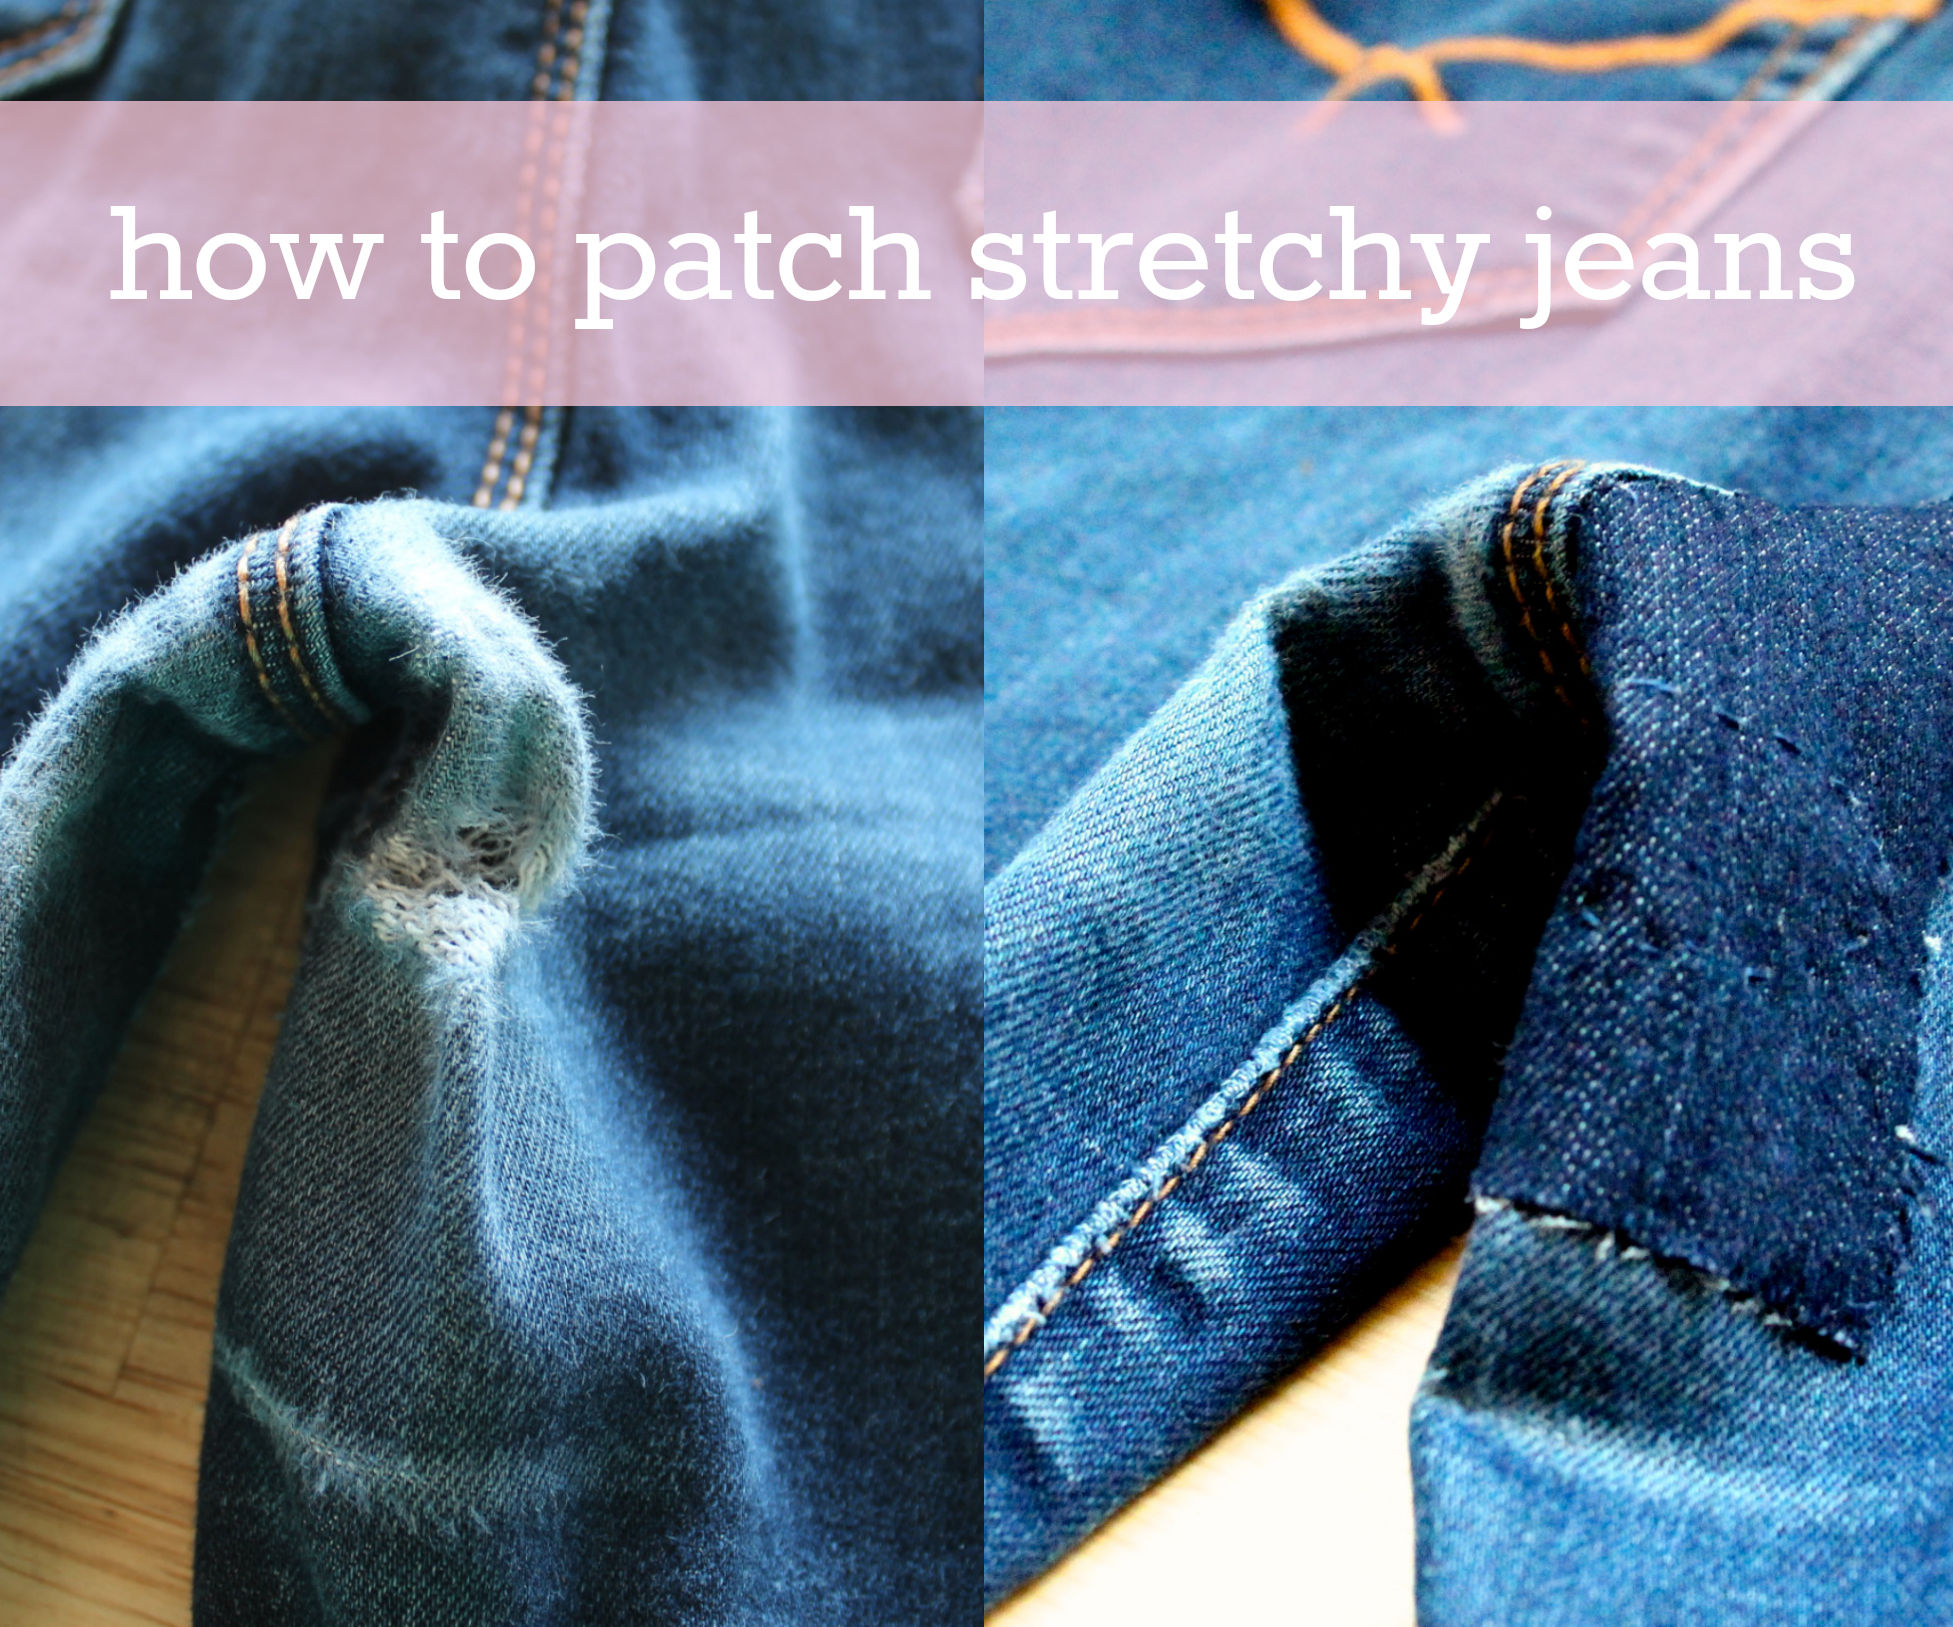 How To Patch Stretchy Jeans 5 Steps With Pictures Instructables